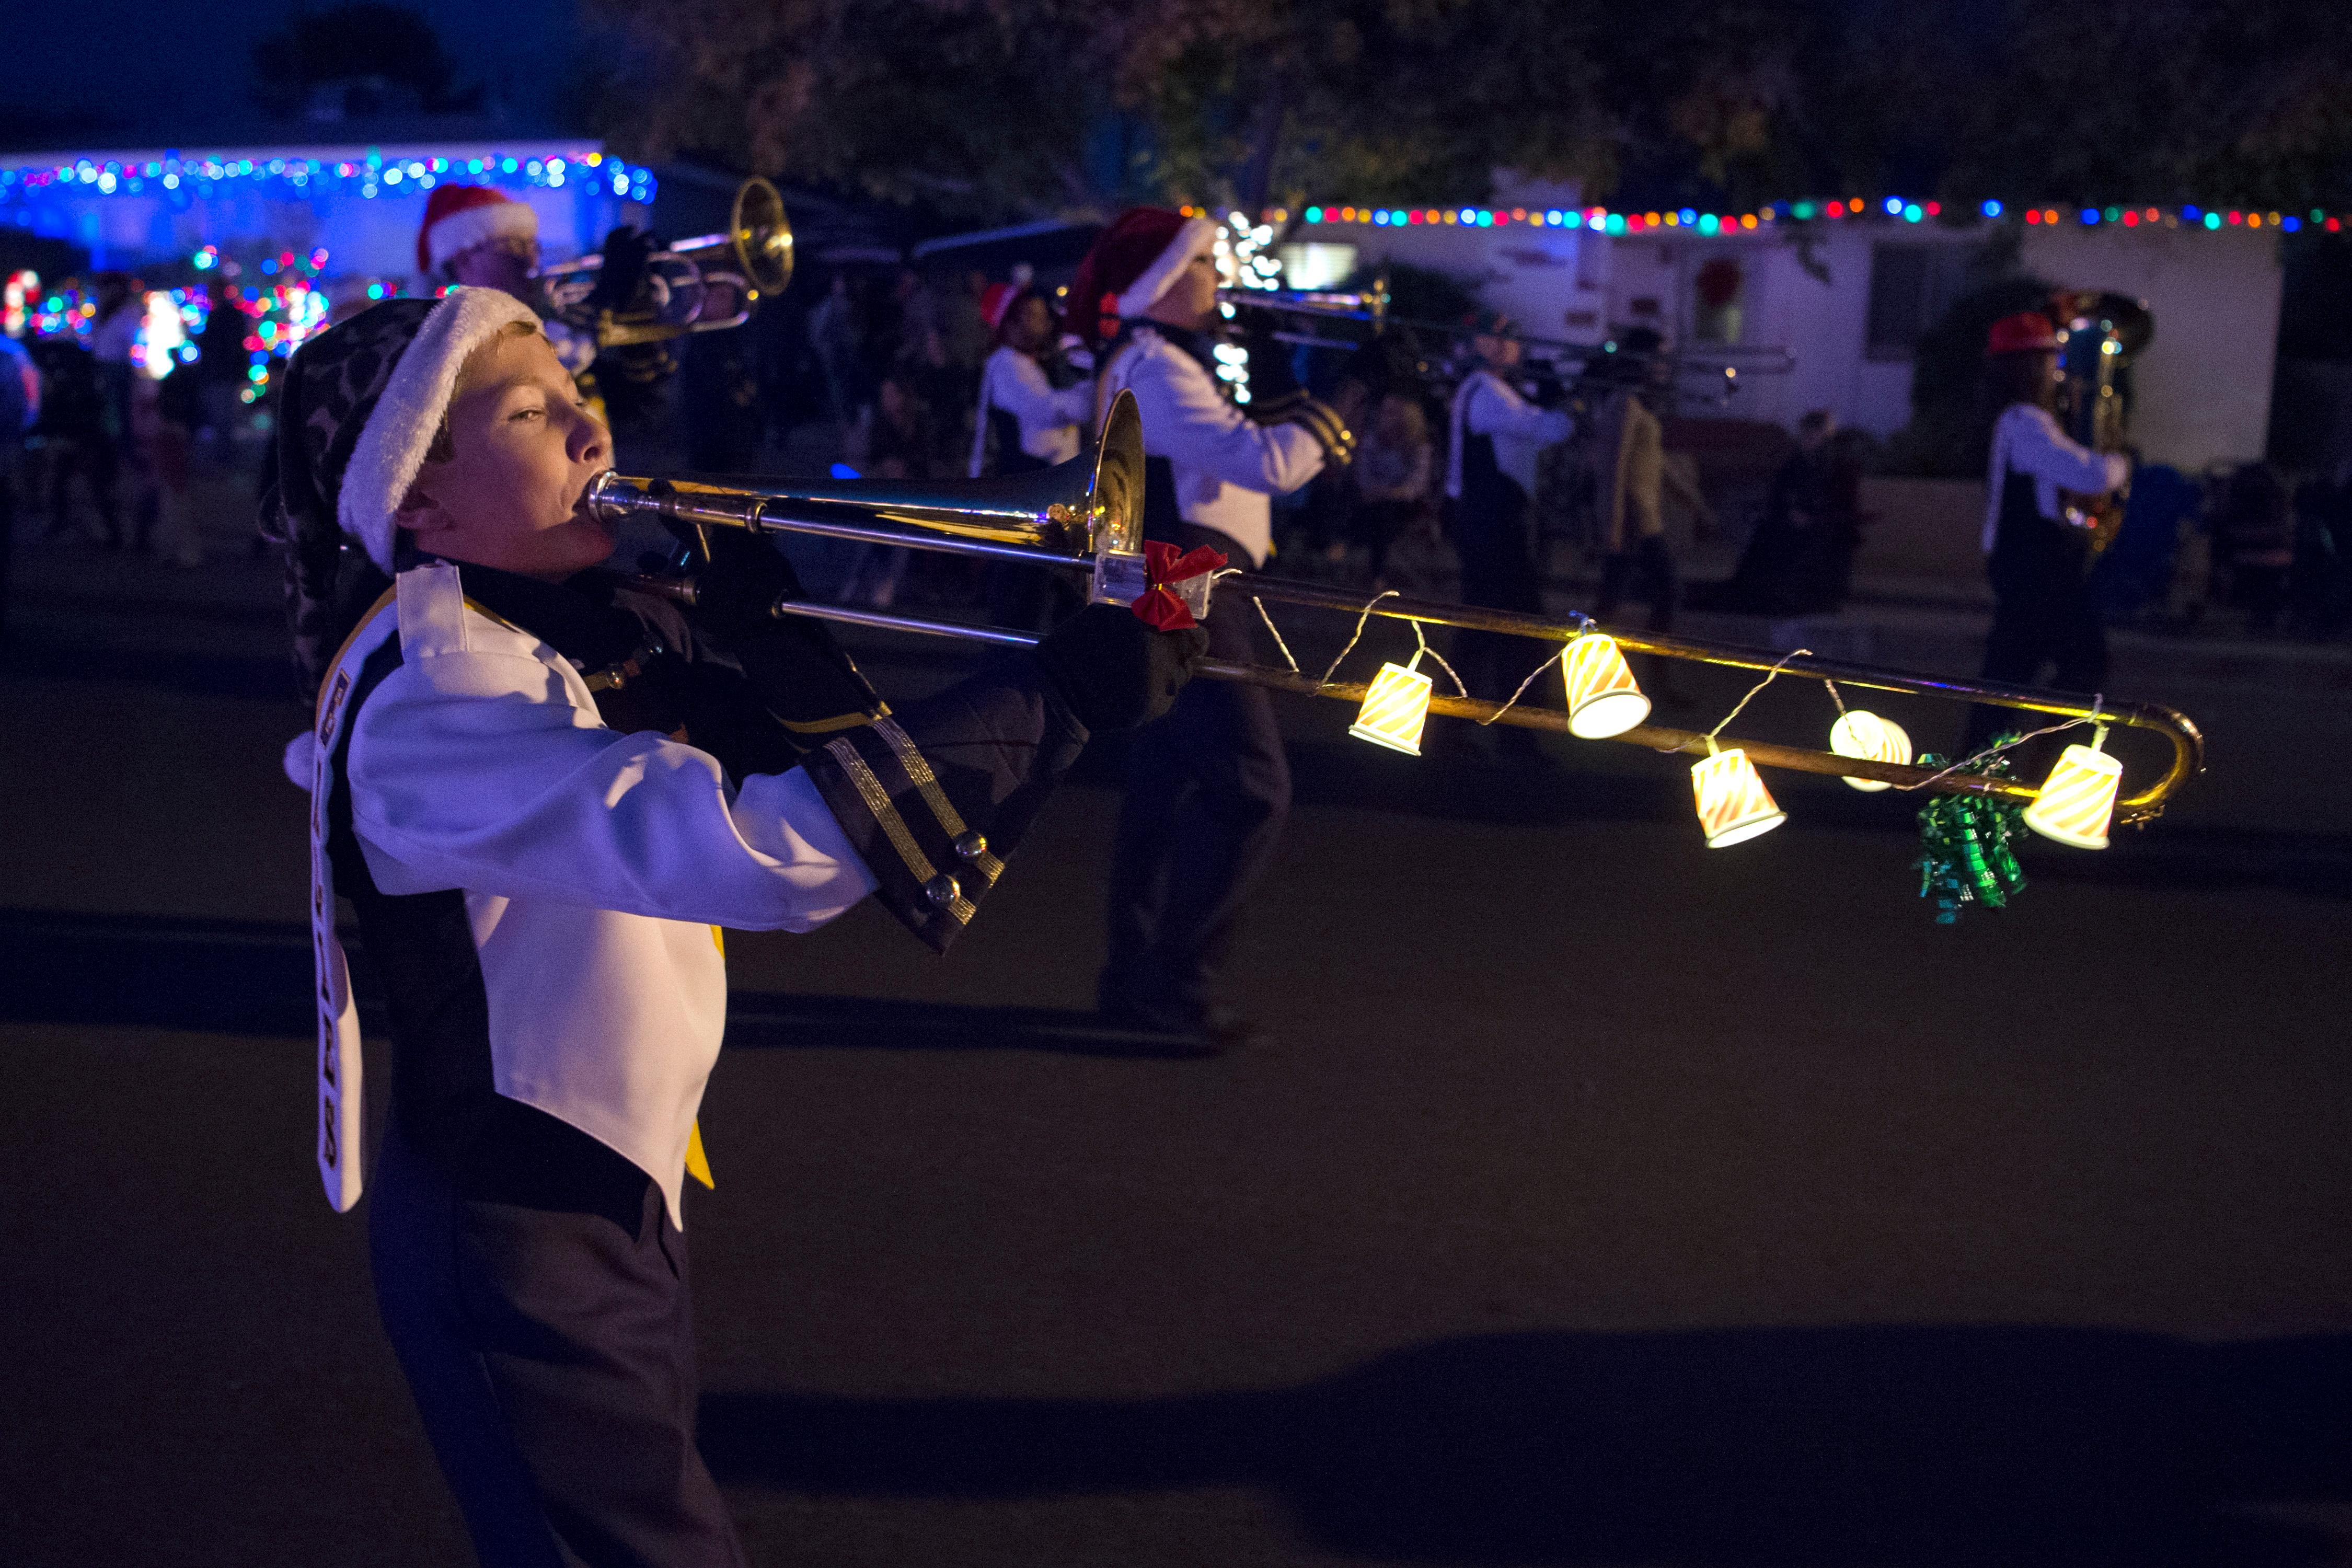 A Boulder City High School trombone player decorates her horn with lights during the Santa's Electric Parade Saturday, December 2, 2017, in Boulder City. [Sam Morris/Las Vegas News Bureau]